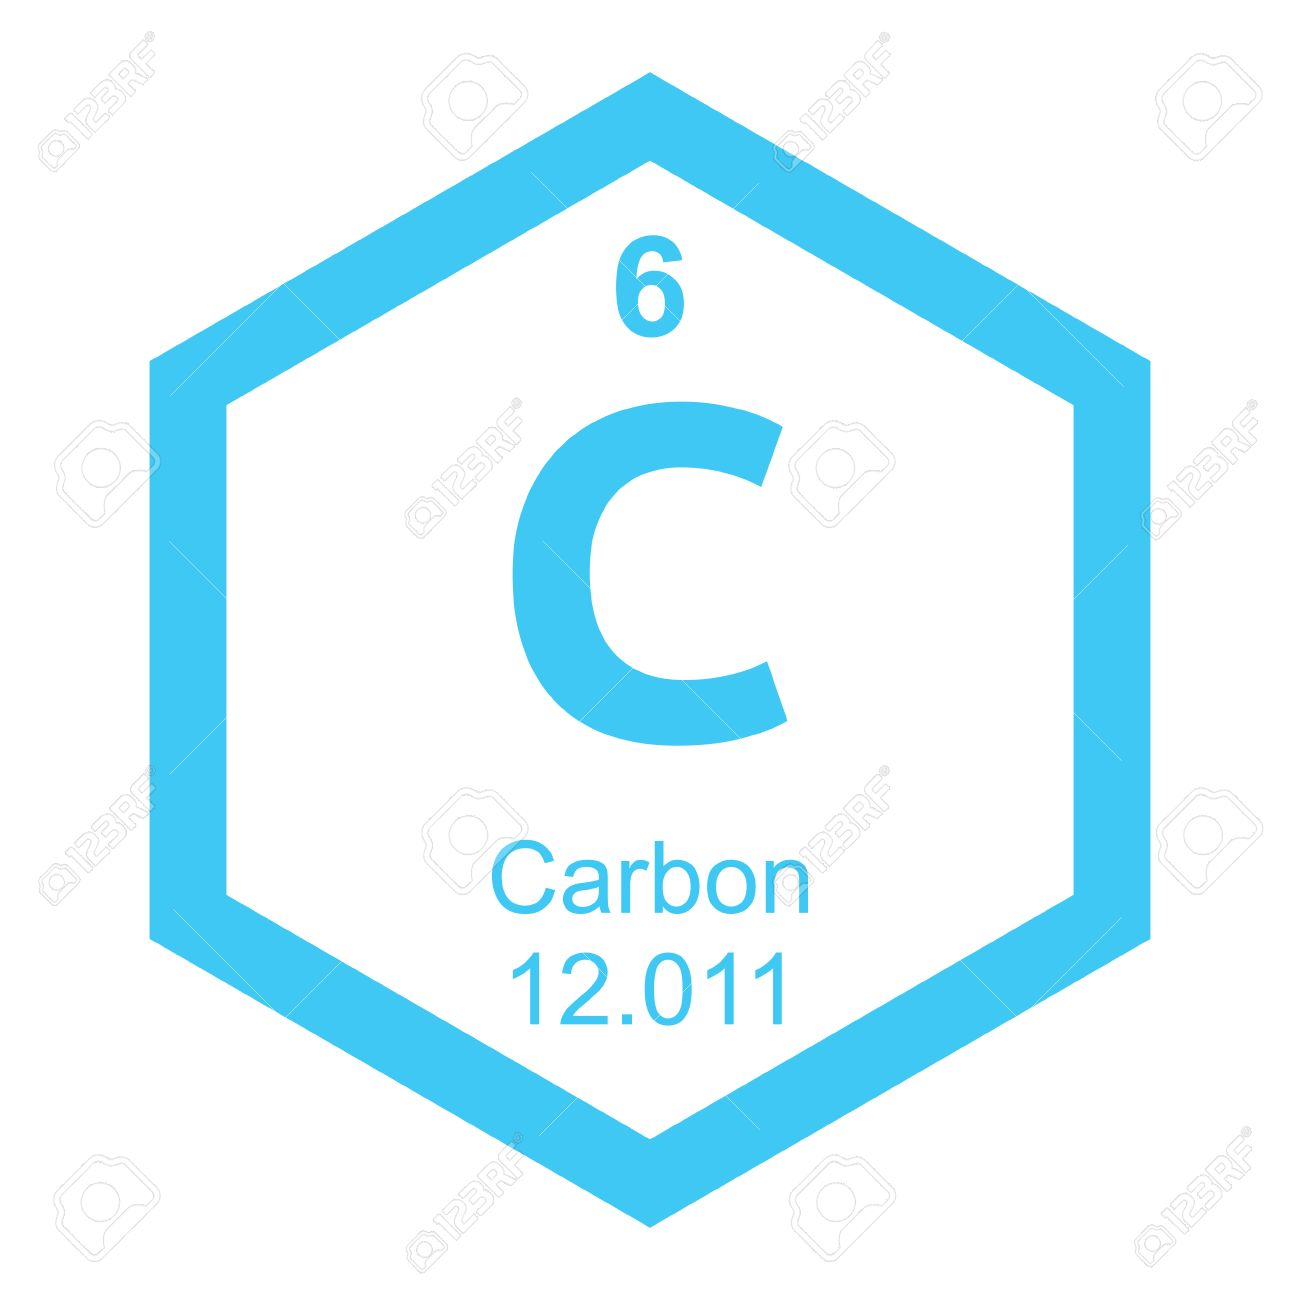 Periodic table carbon royalty free cliparts vectors and stock periodic table carbon stock vector 41261537 urtaz Images